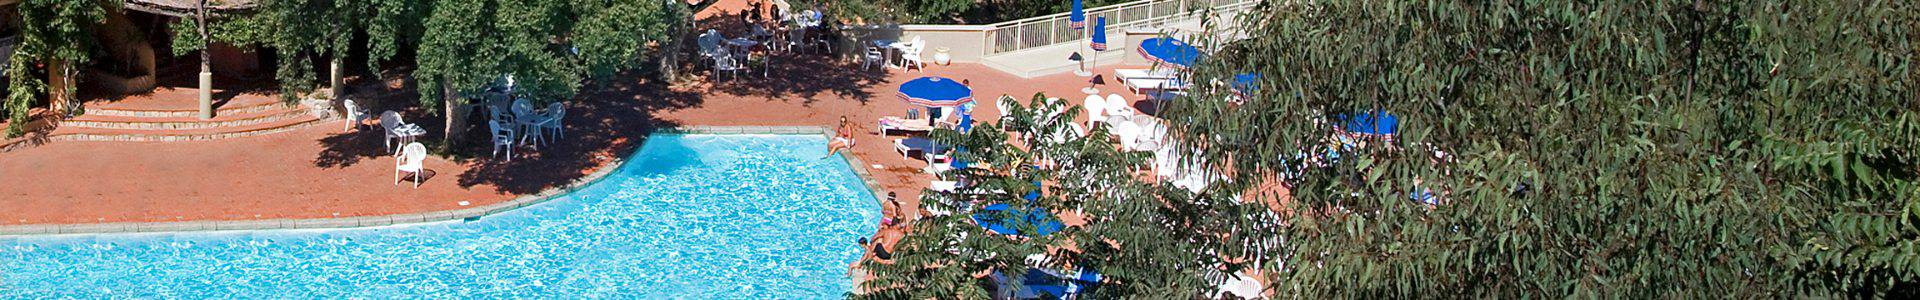 Blau hotels & resorts - Arbatax - Cerdeña -